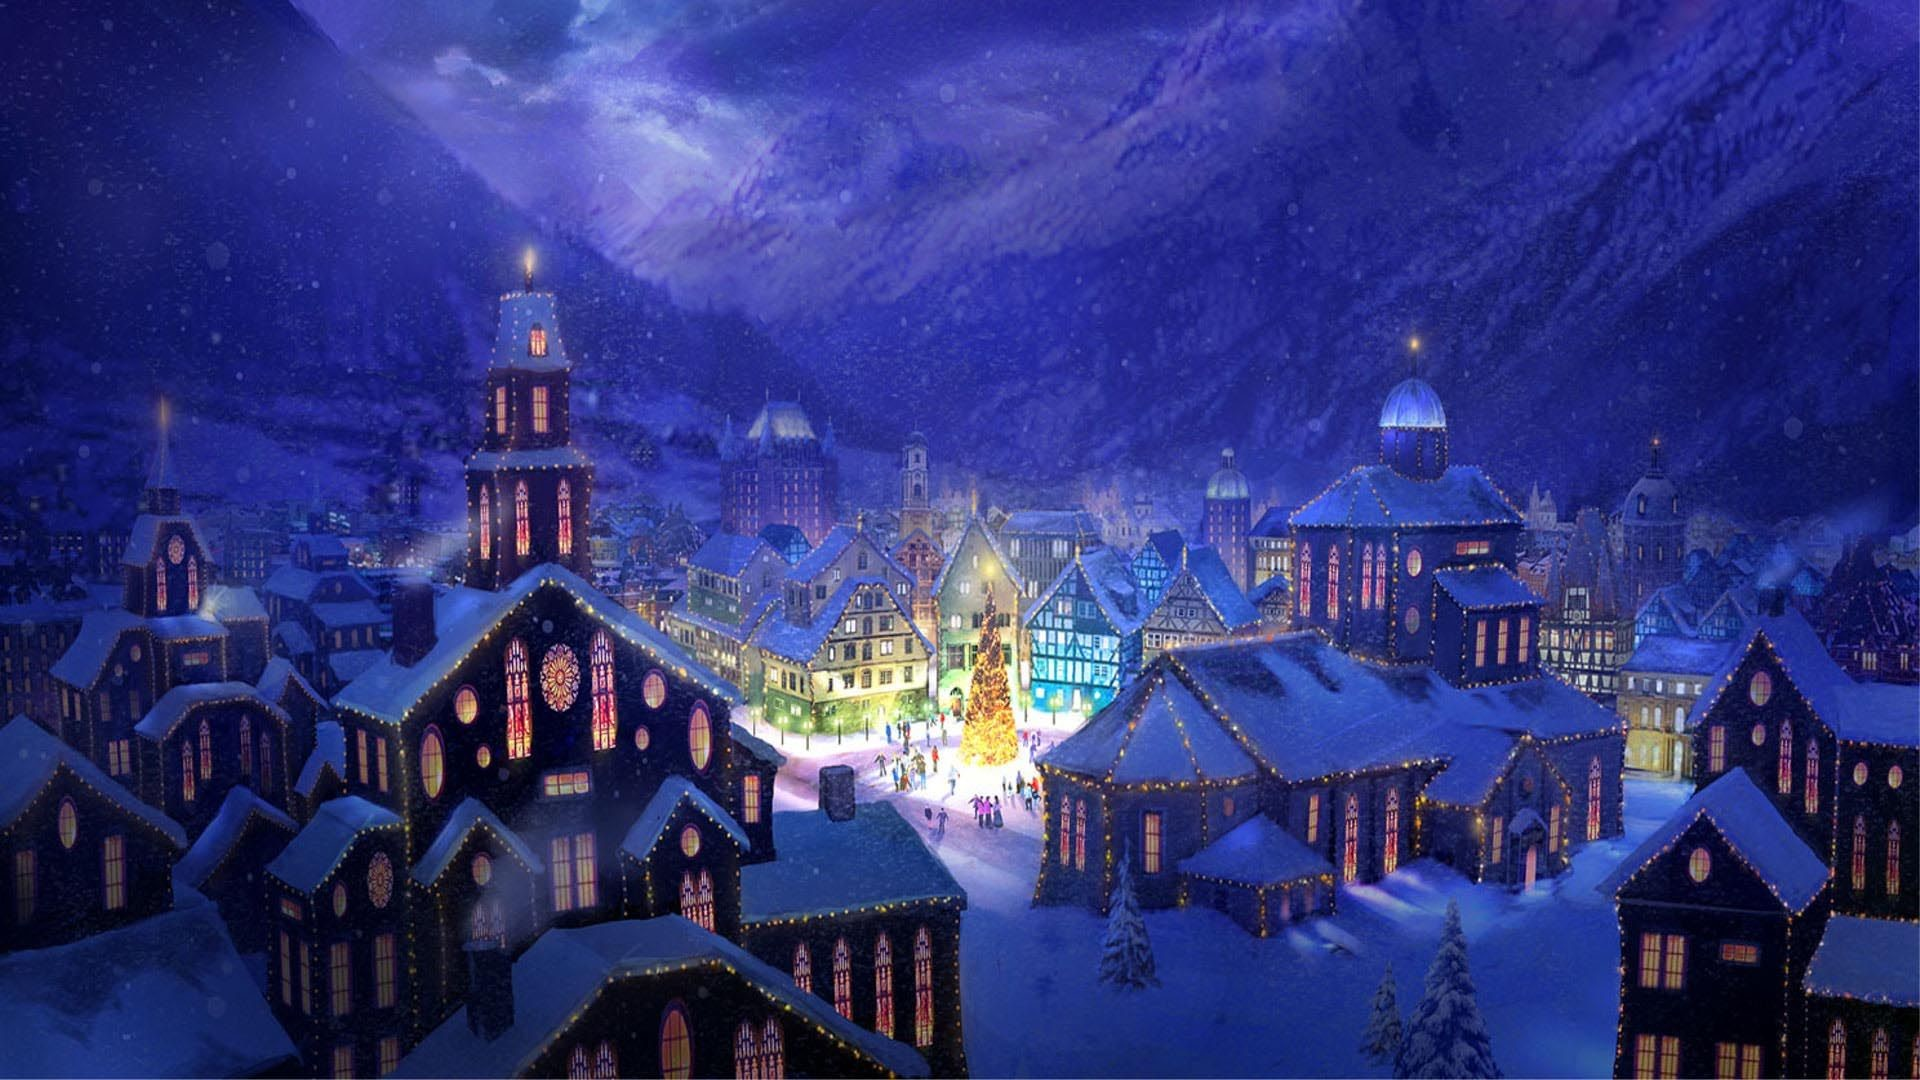 1920x1080 Hd wallpaper xmas - Christmas Hd Wallpapers Download